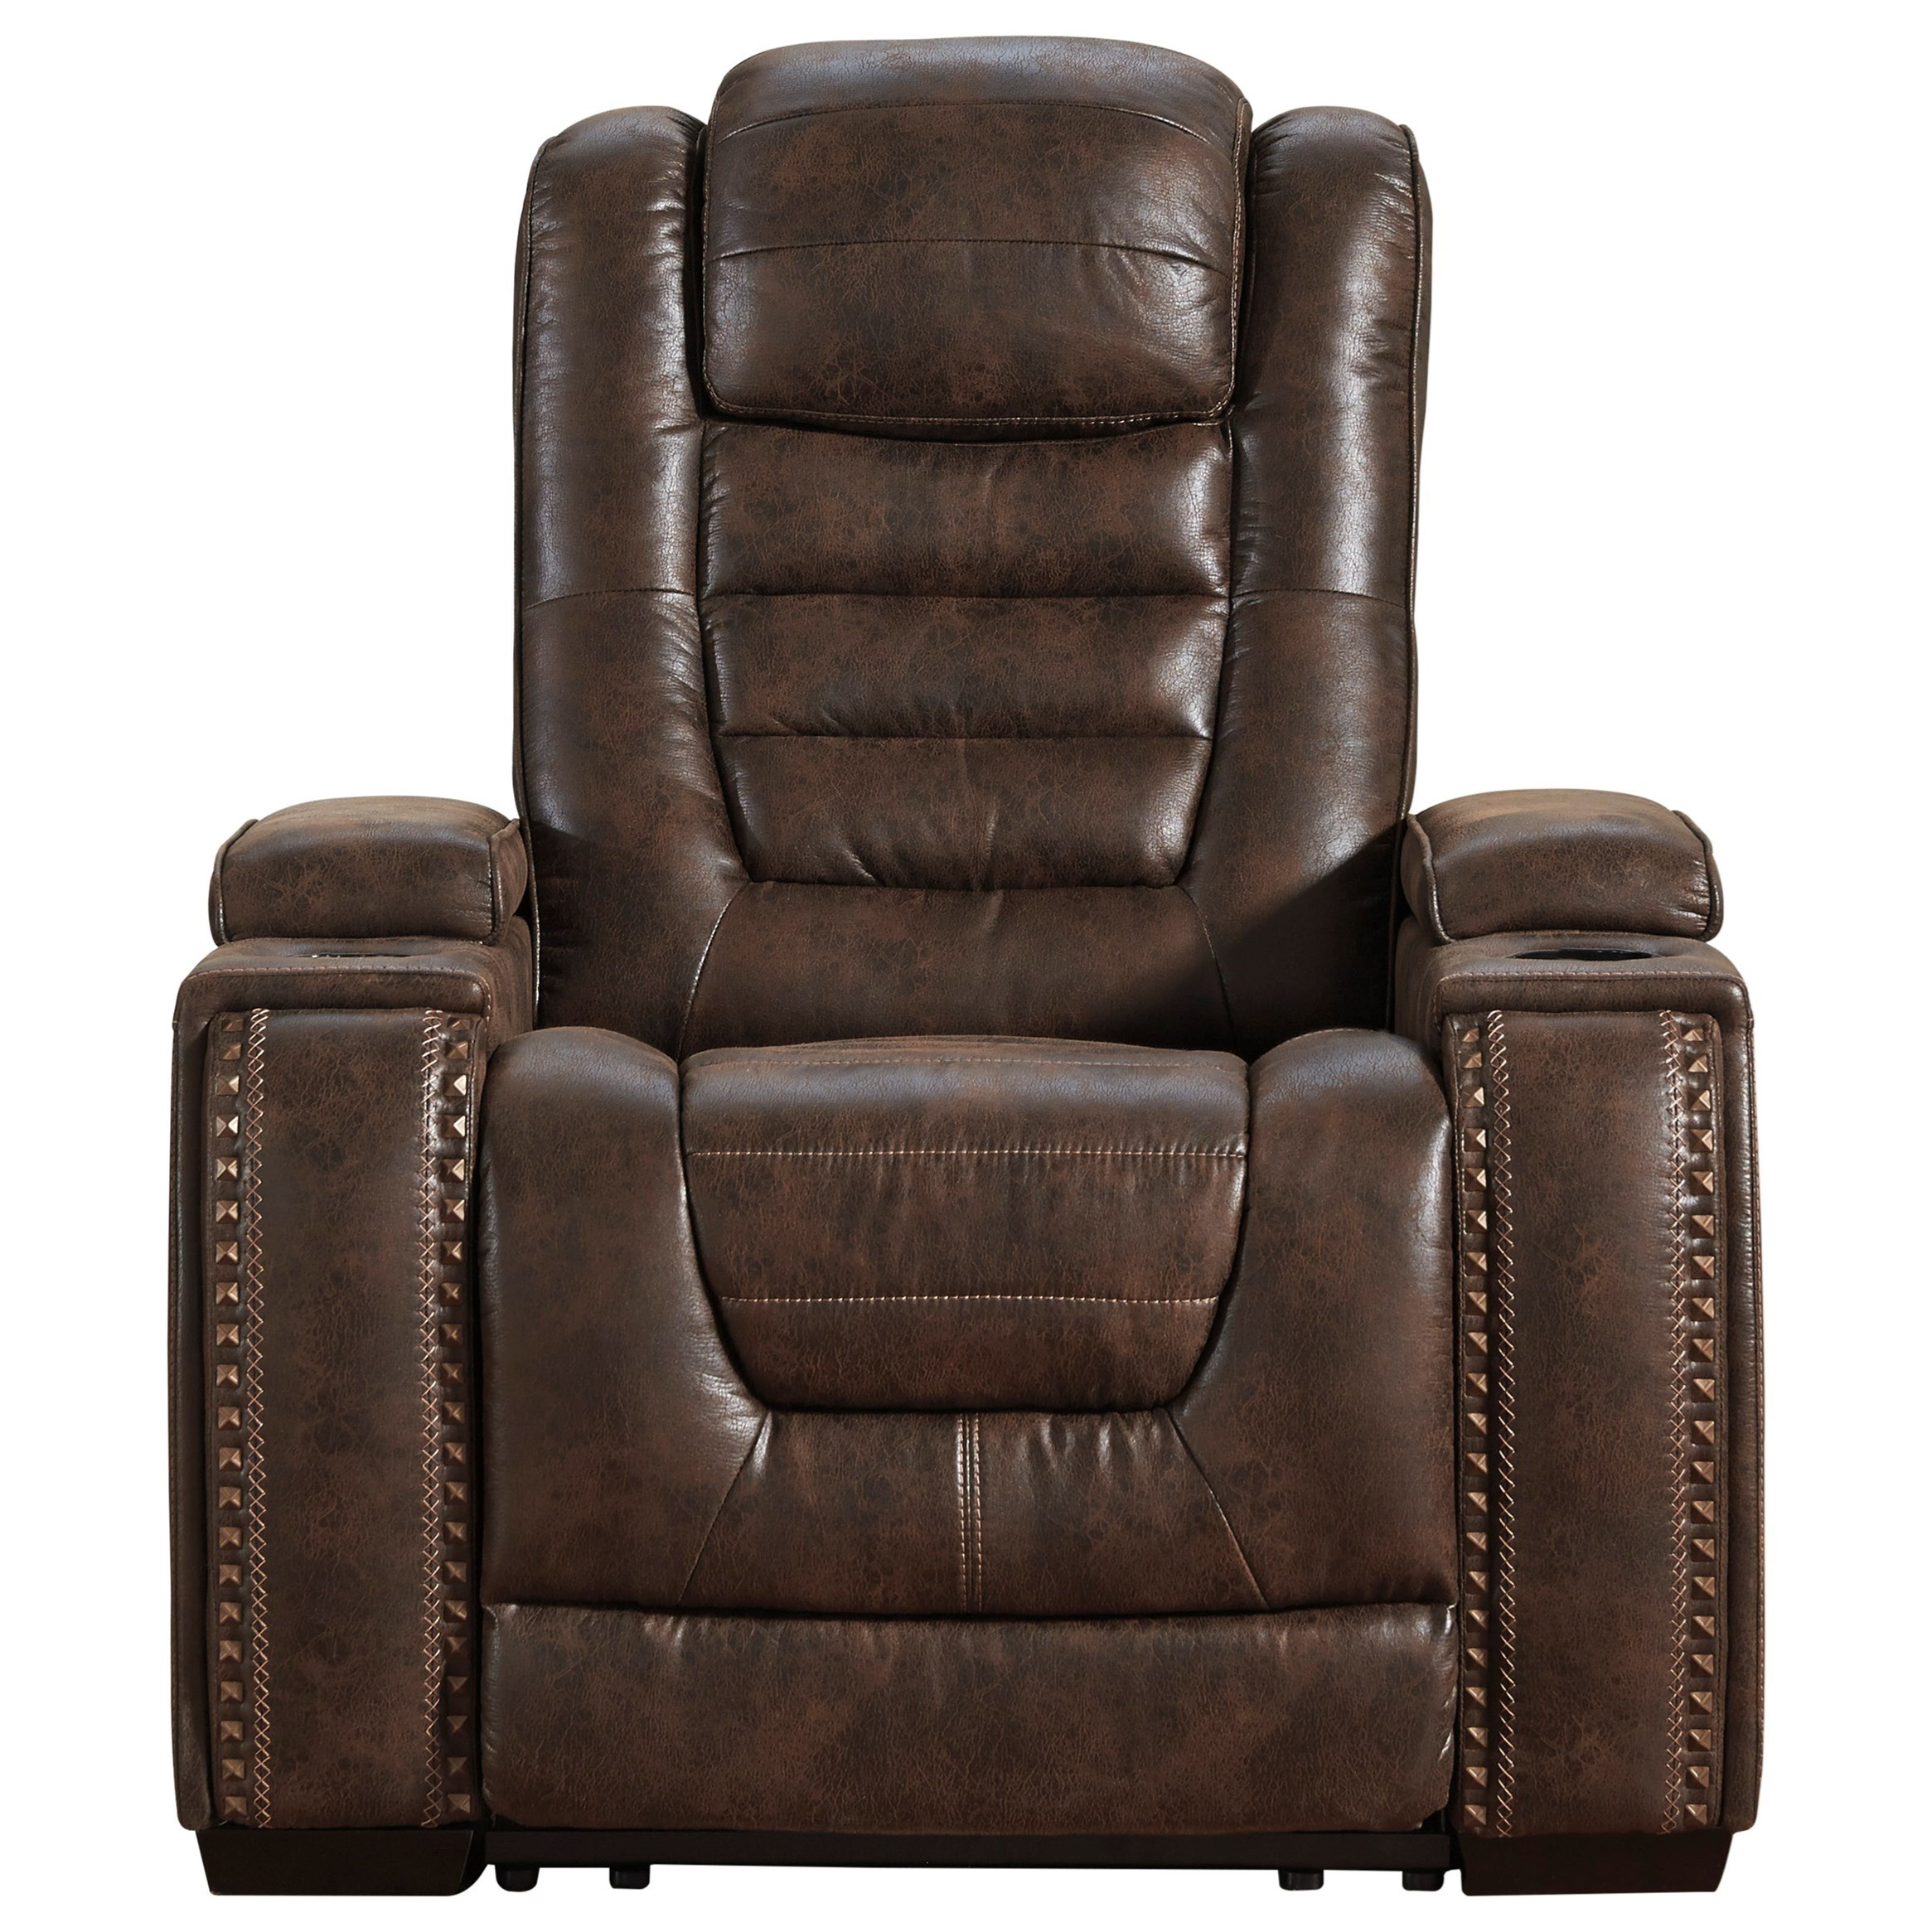 Game Zone Power Recliner with Adjustable Headrest by Signature Design by Ashley at Northeast Factory Direct